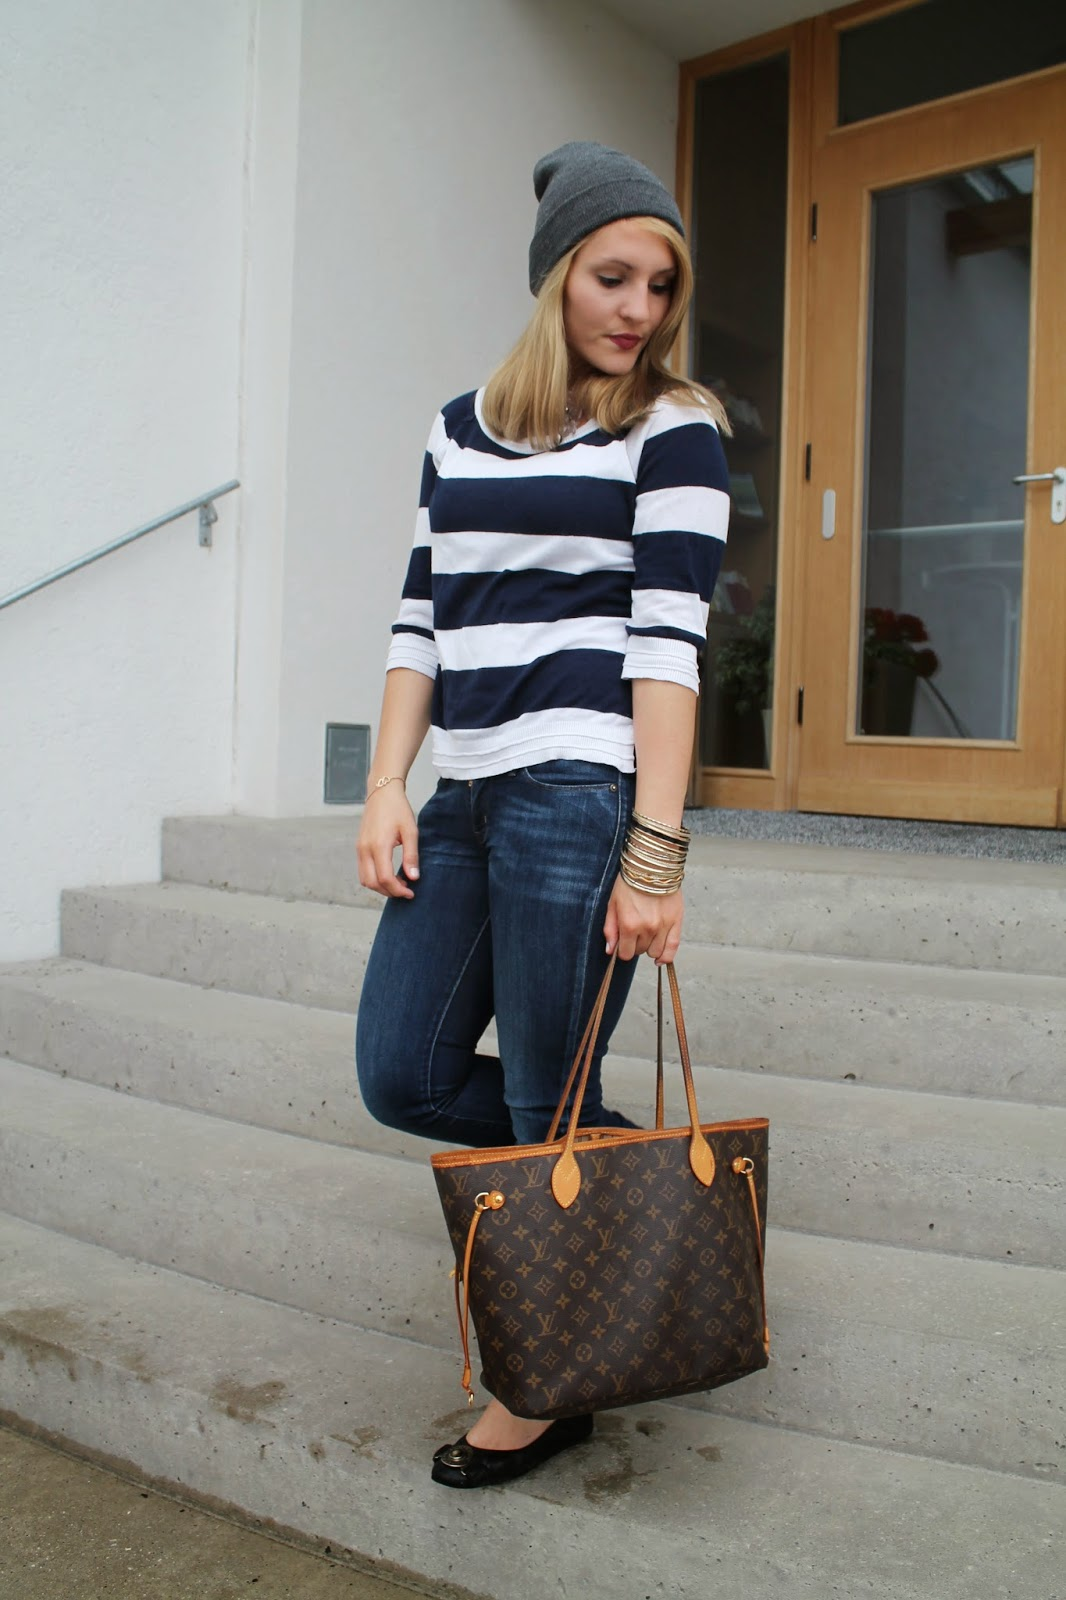 Fashionblogger Austria / Österreich / Deutsch / German / Kärnten / Carinthia / Klagenfurt / Köttmannsdorf / Spring Look / Classy / Edgy / Summer / Summer Style 2014 / Summer Look / Fashionista Look / Oasap / Striped Shirt / Beanie / Streetstyle / Louis Vuitton neverfull / Burberry Ballerinas /